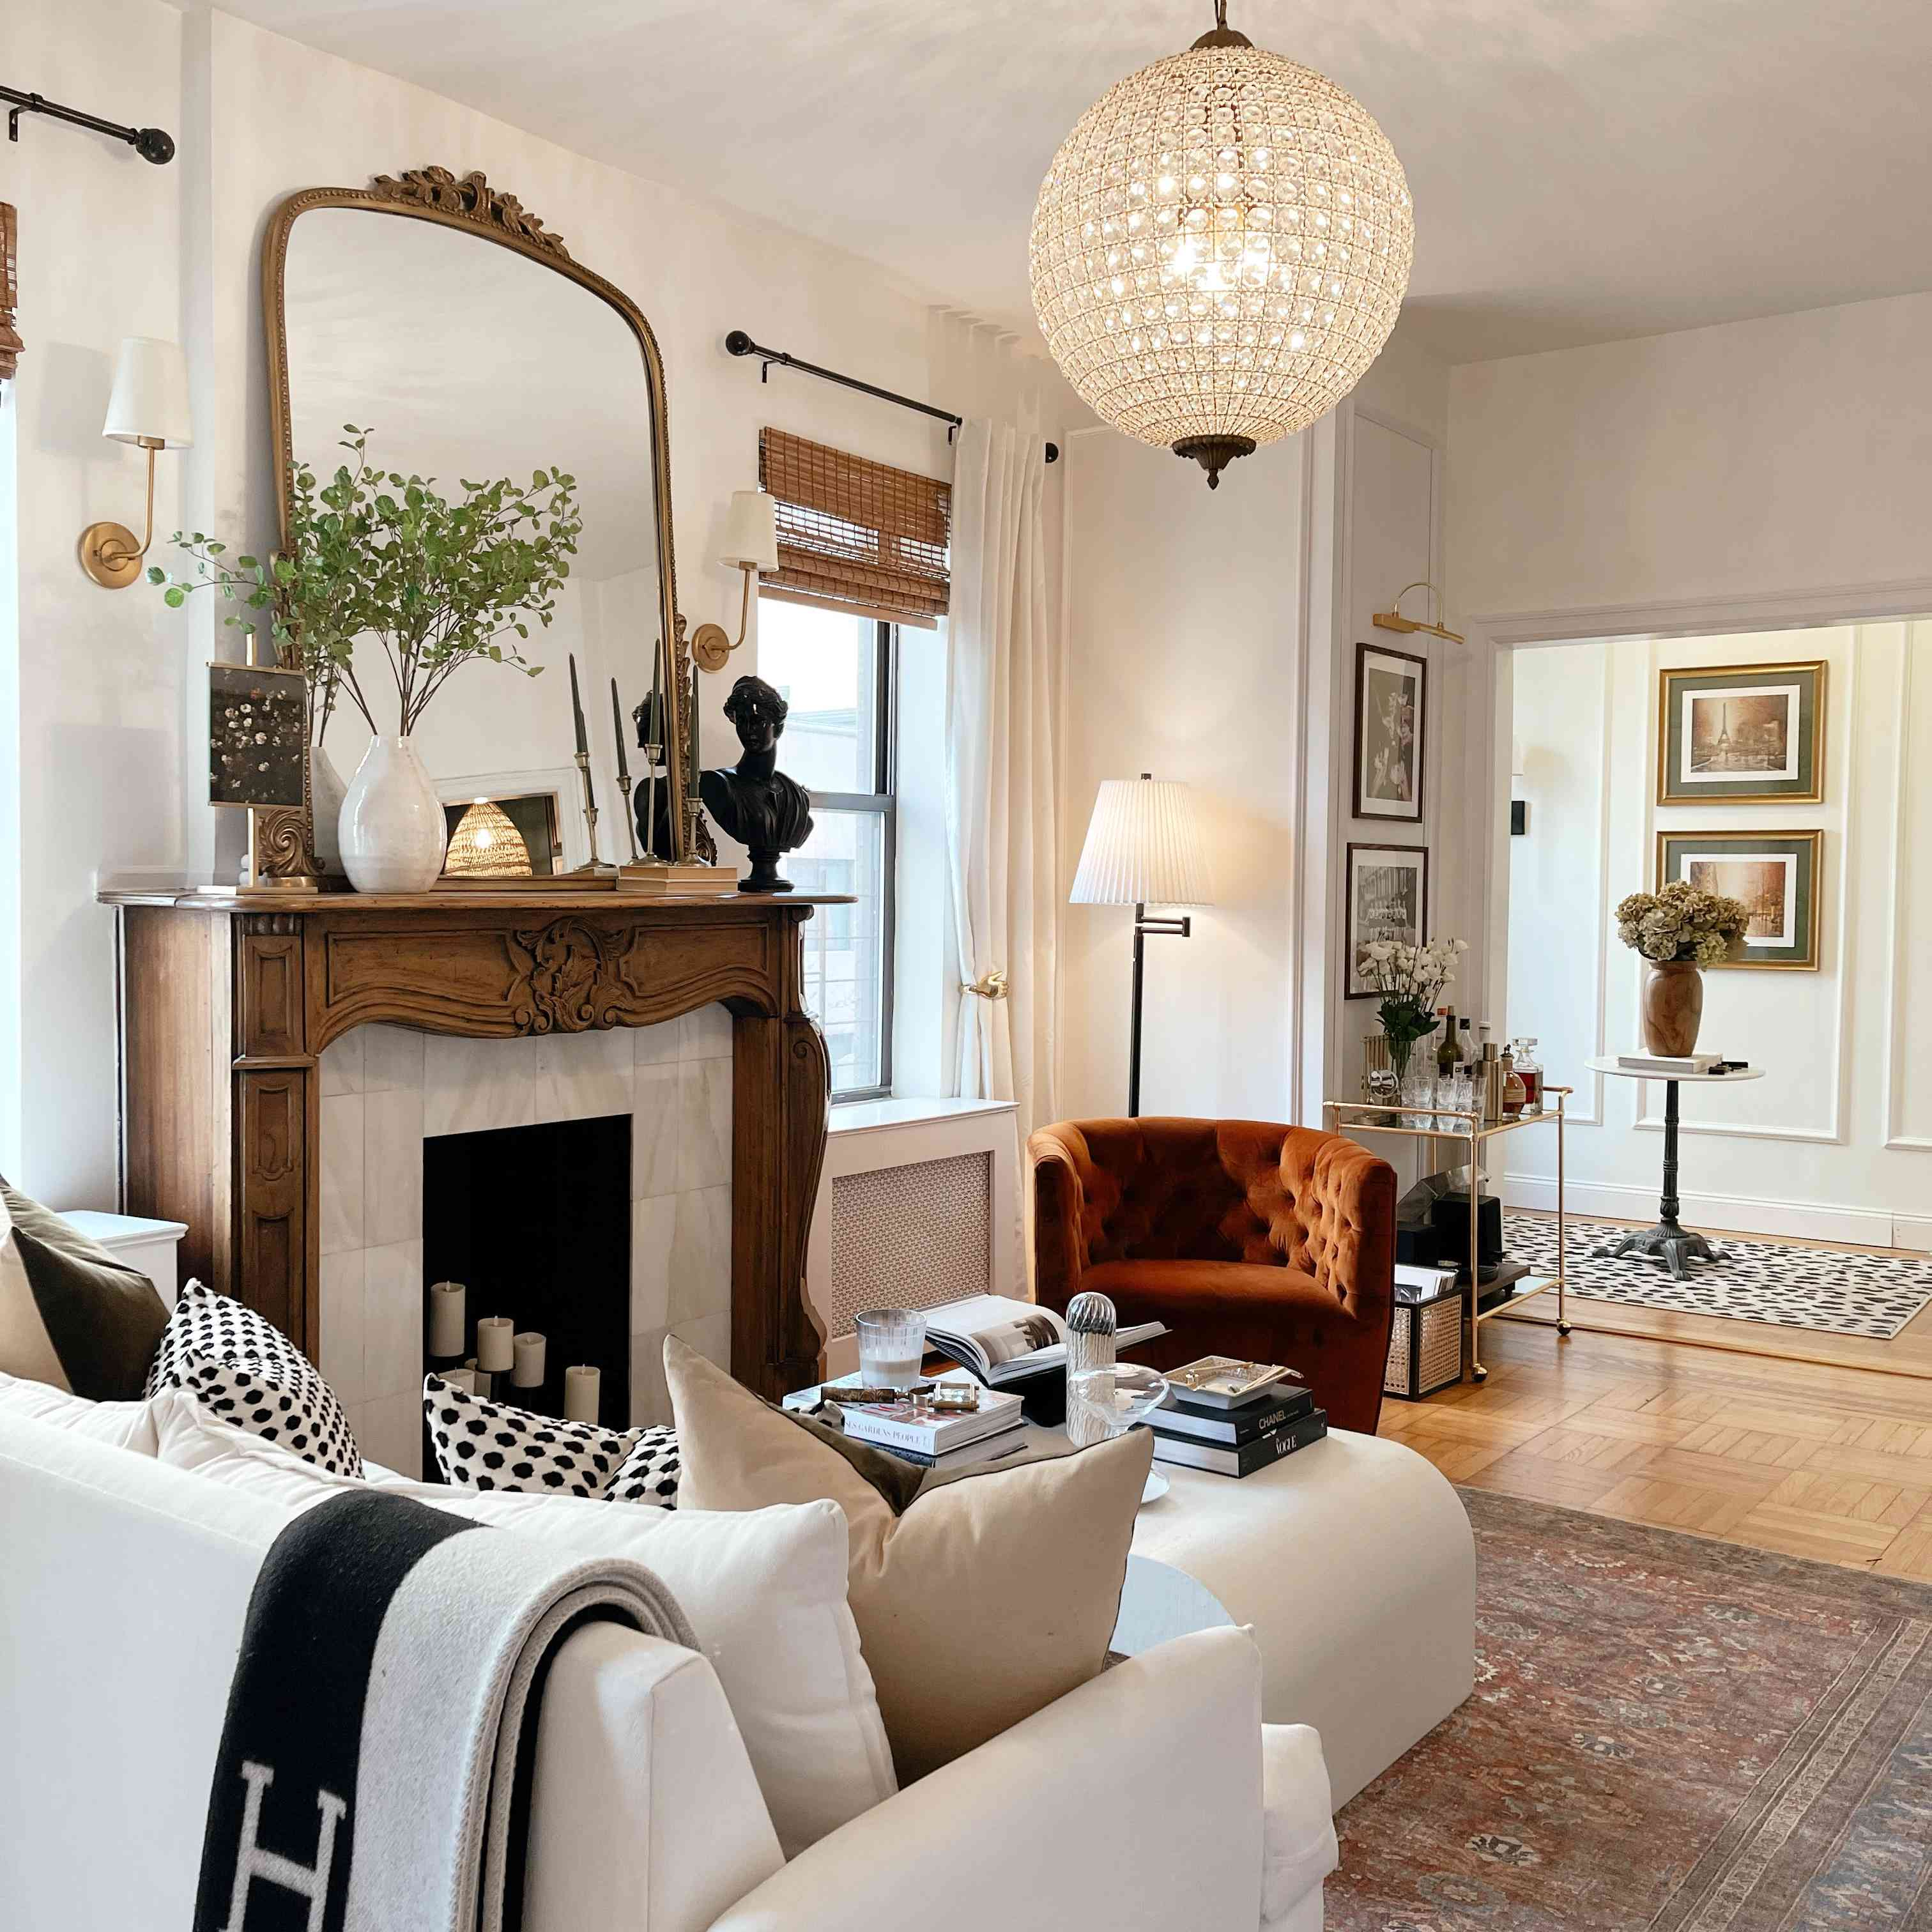 Luxe cozy living room with crystal chandelier.